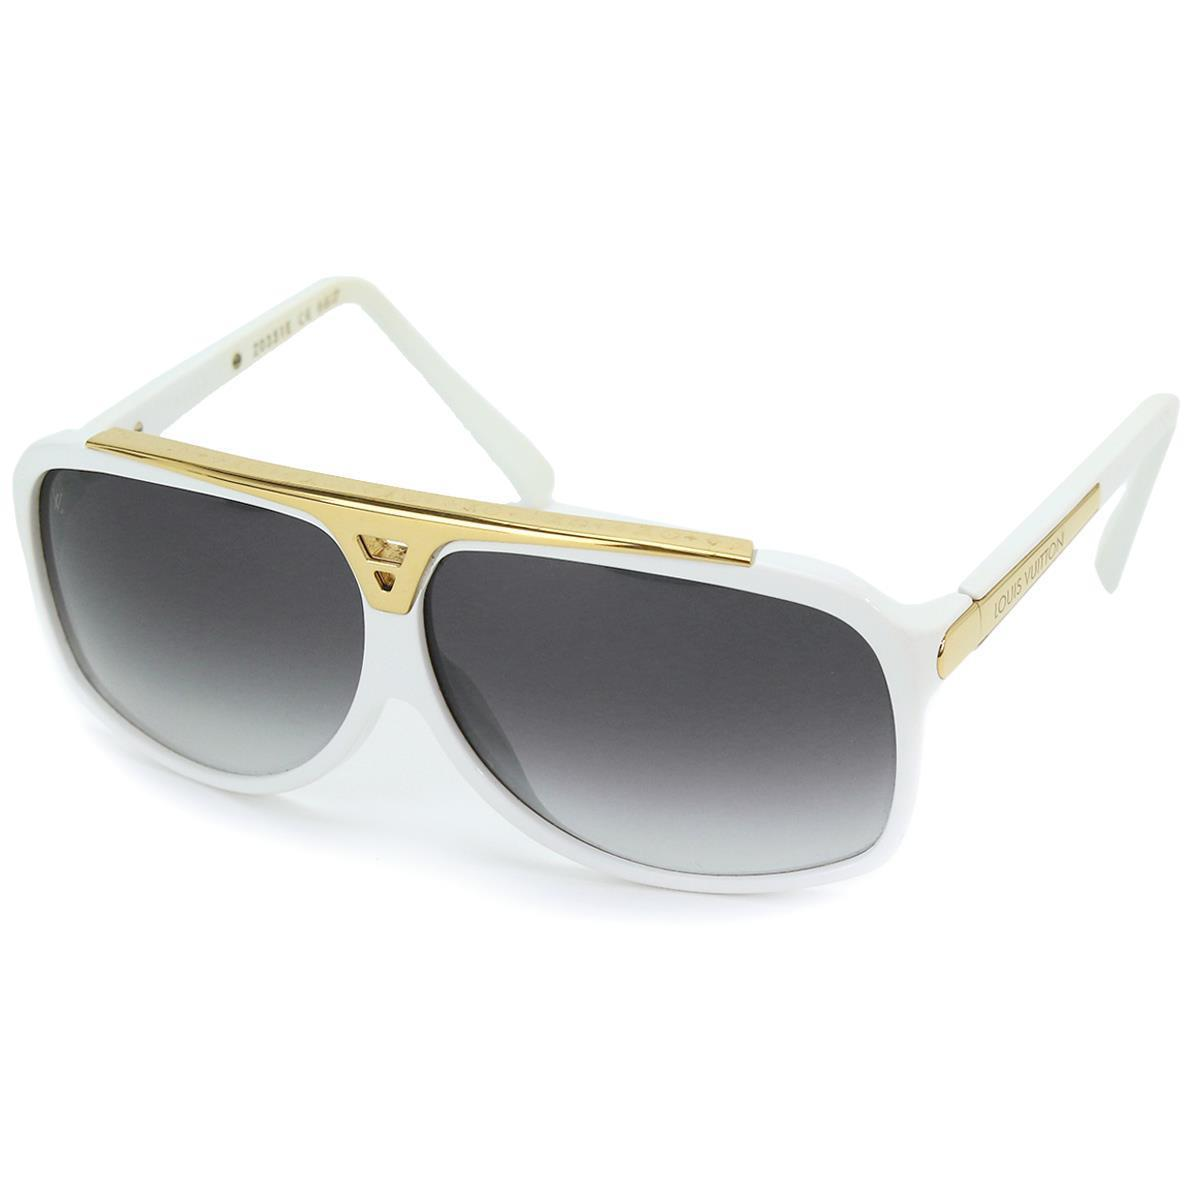 6af0e75473d Details about Auth LOUIS VUITTON Evidence Eye Sunglasses Tear Drop Z0351E  White 90064402